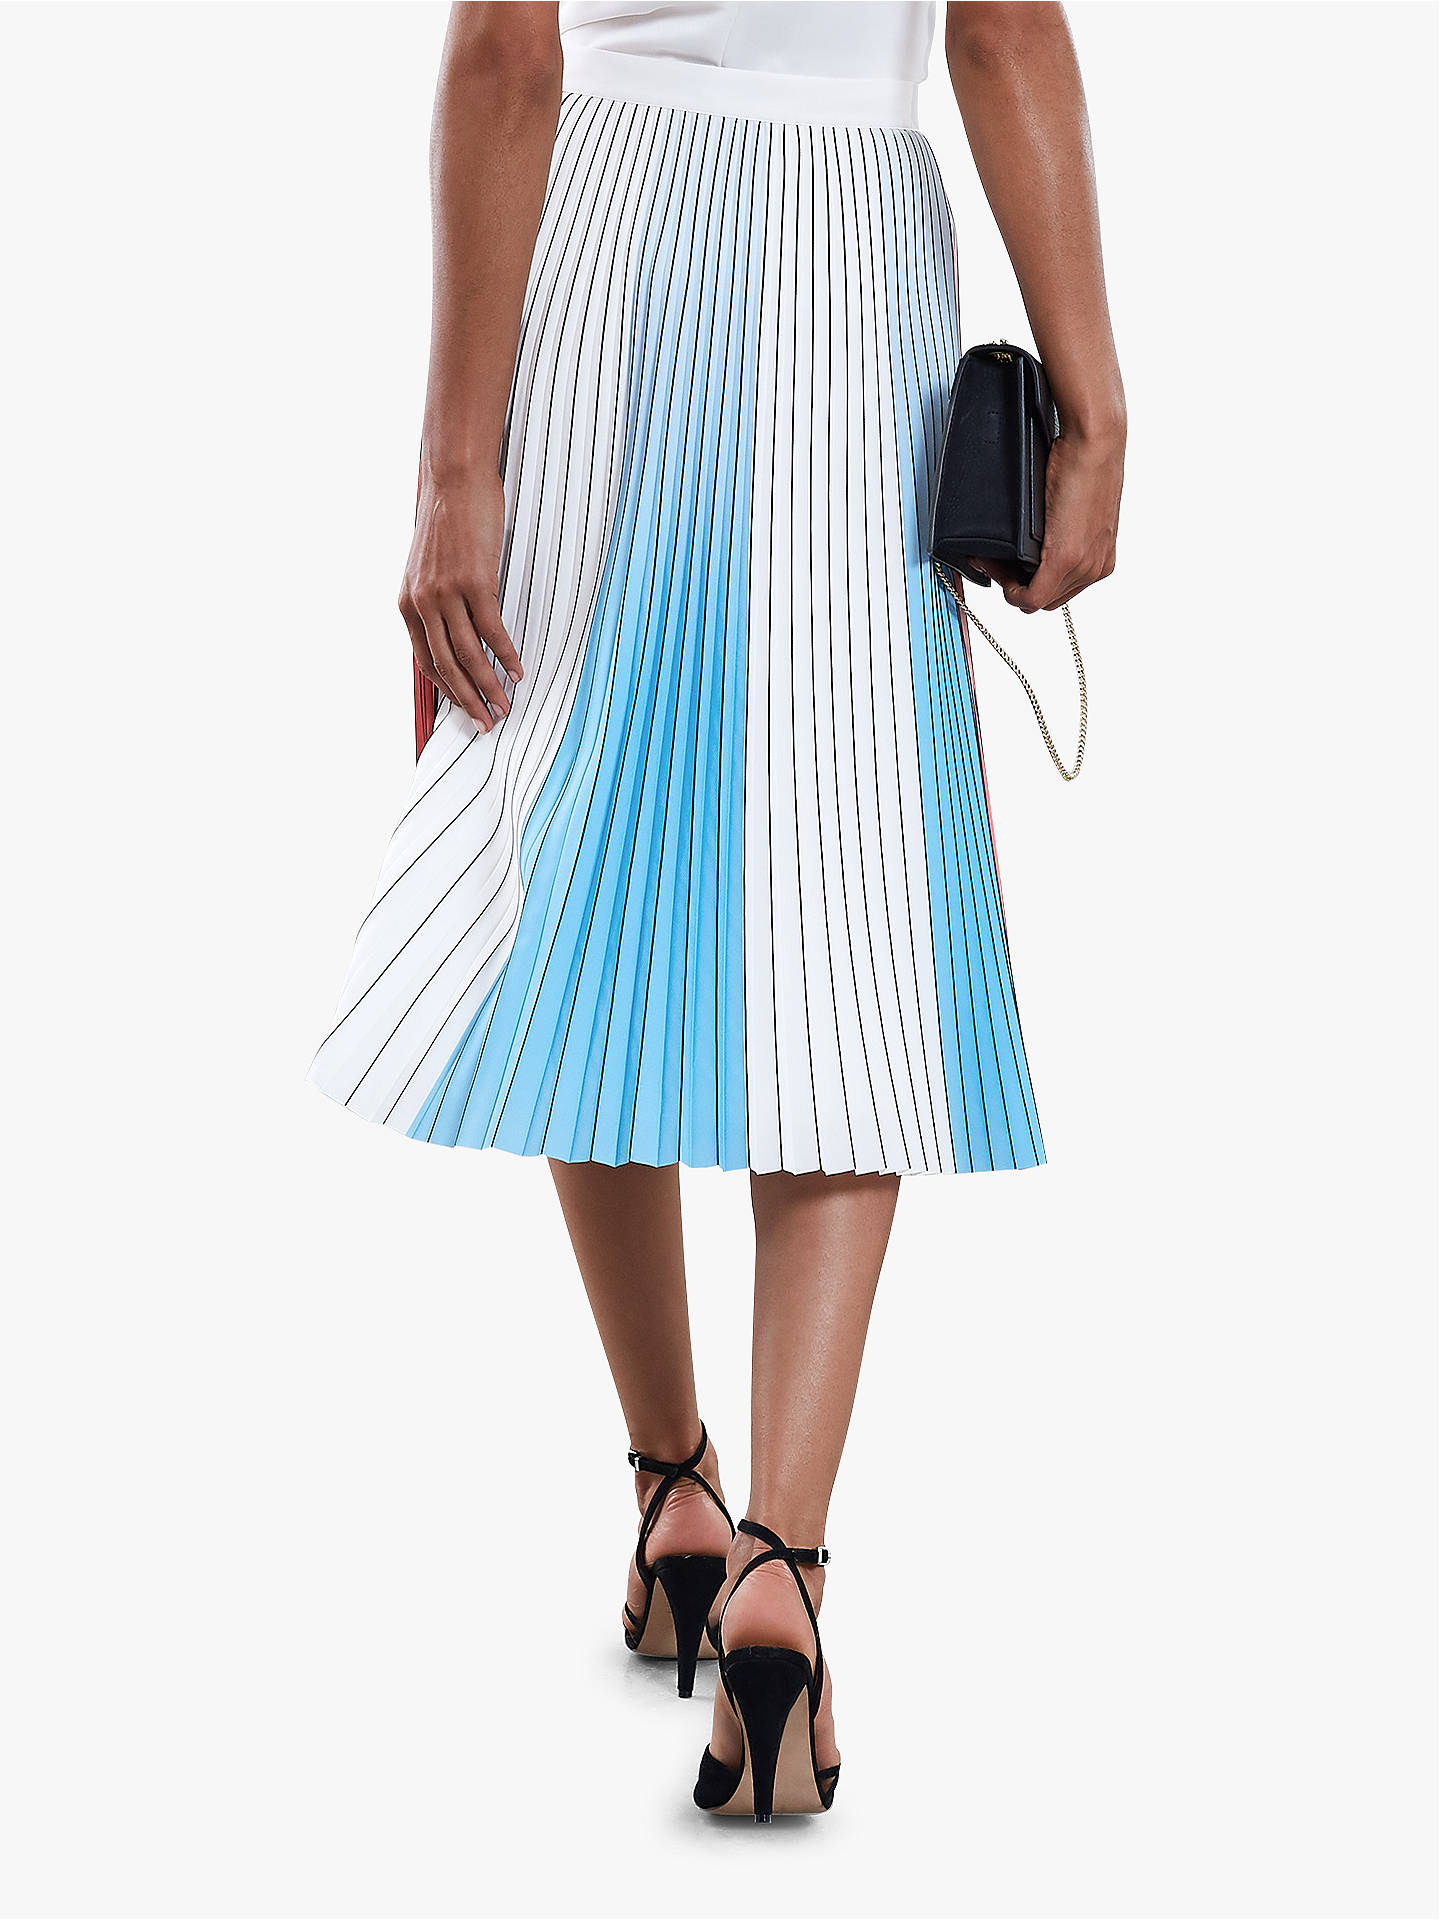 BuyReiss Nina Pastel Pleated Skirt, Multi, 6 Online at johnlewis.com